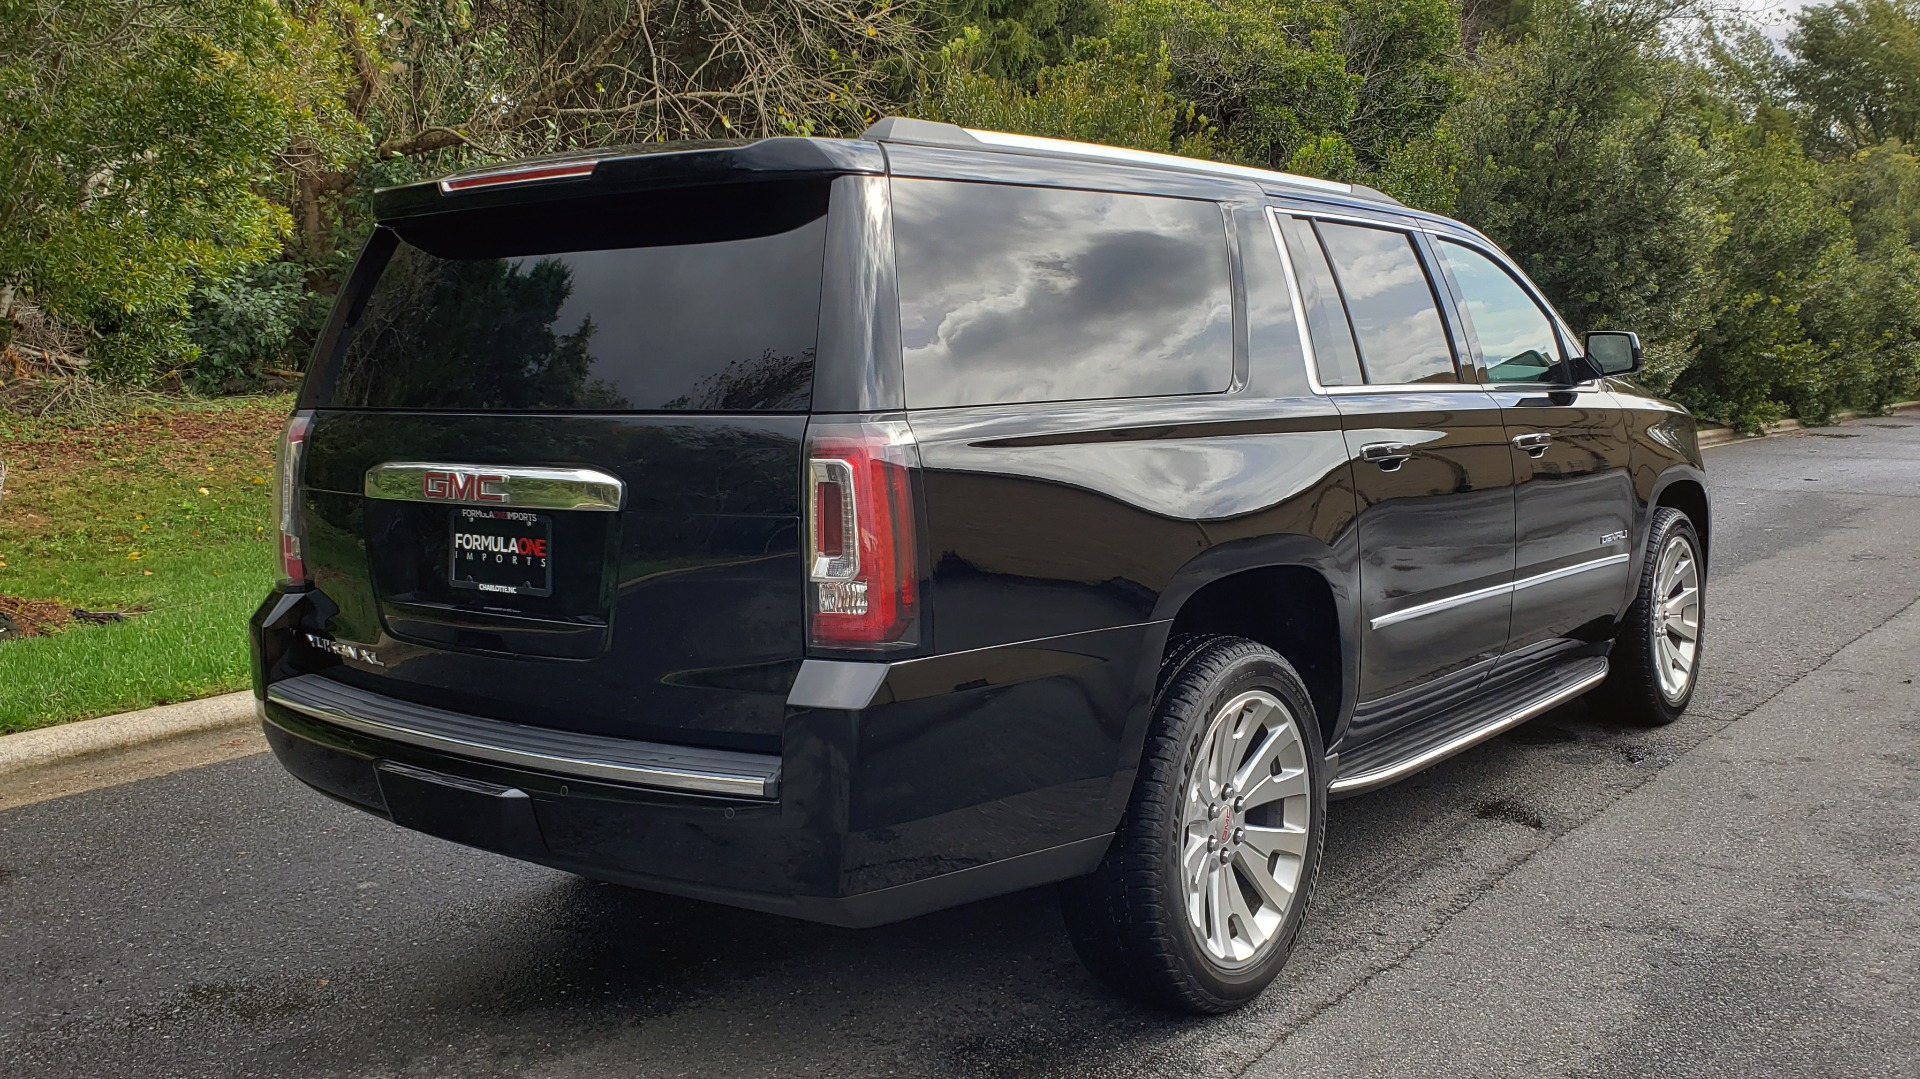 Used 2017 GMC YUKON XL DENALI 4WD / NAV / SUNROOF / ENT / 3-ROWS / BOSE / REARVIEW for sale Sold at Formula Imports in Charlotte NC 28227 6